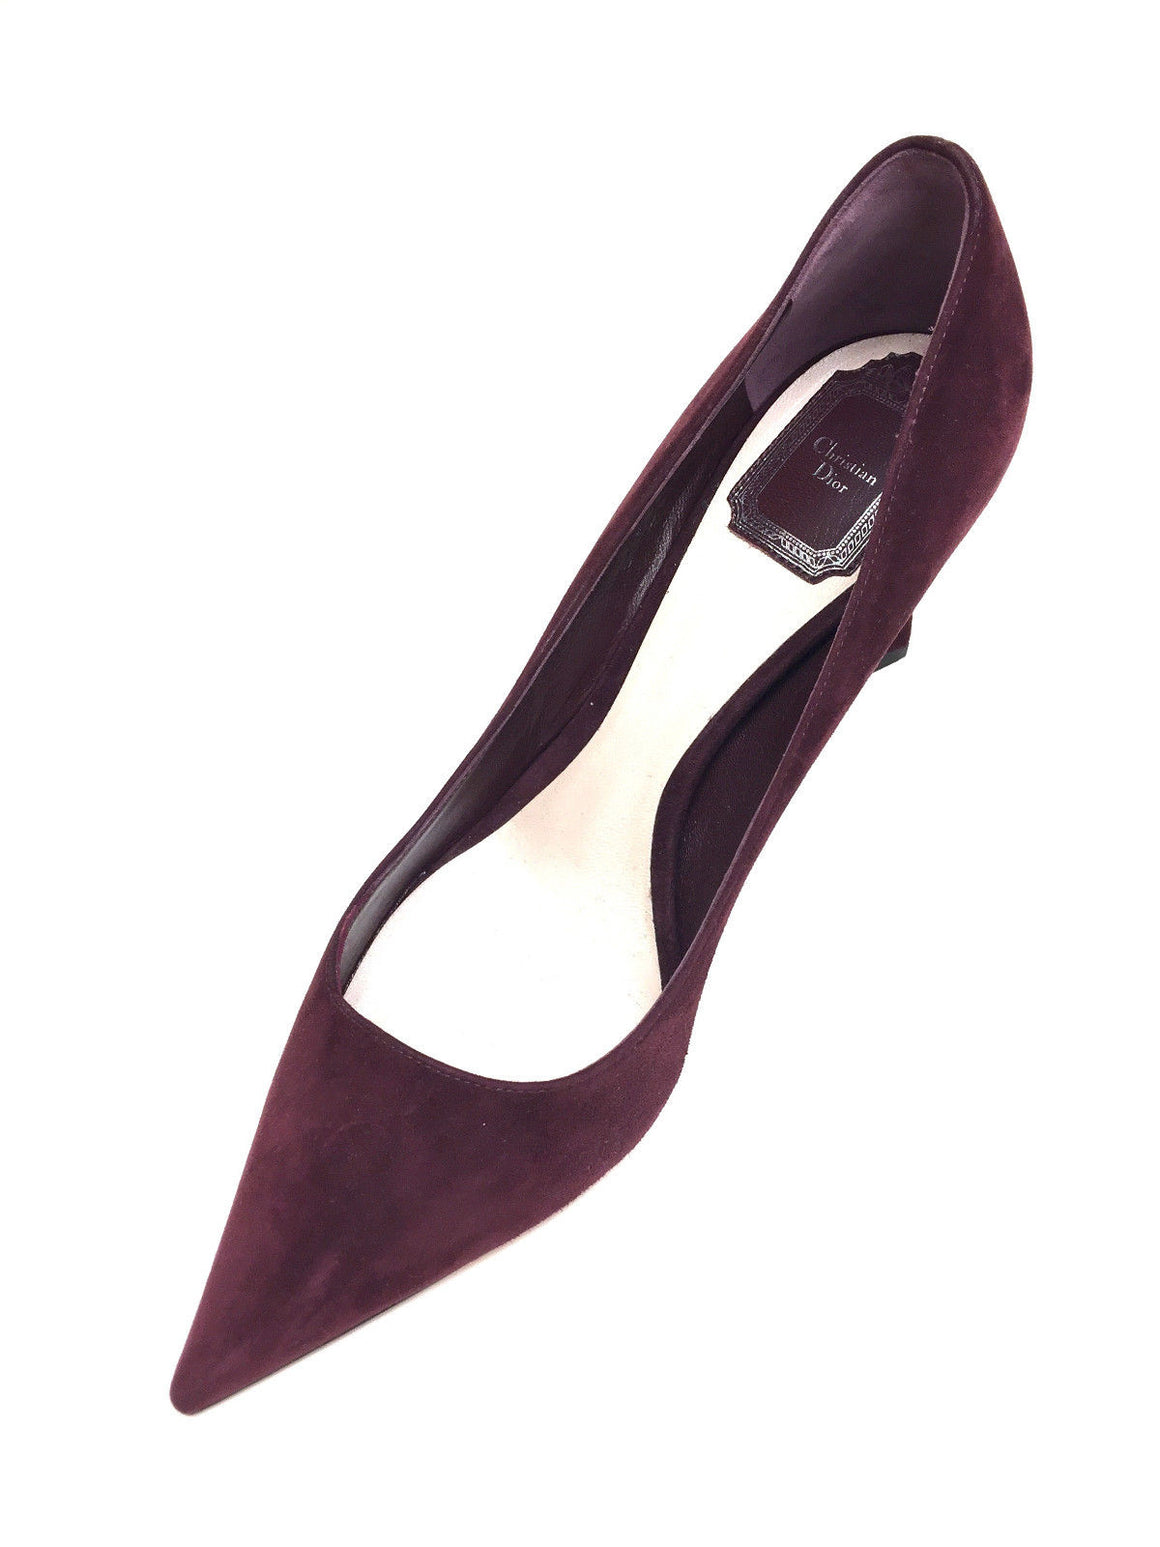 bisbiz.com CHRISTIAN DIOR  Burgundy Suede Pointed-Toe Sculpted Heels Pumps  Size: 39 / 9 - Bis Luxury Resale